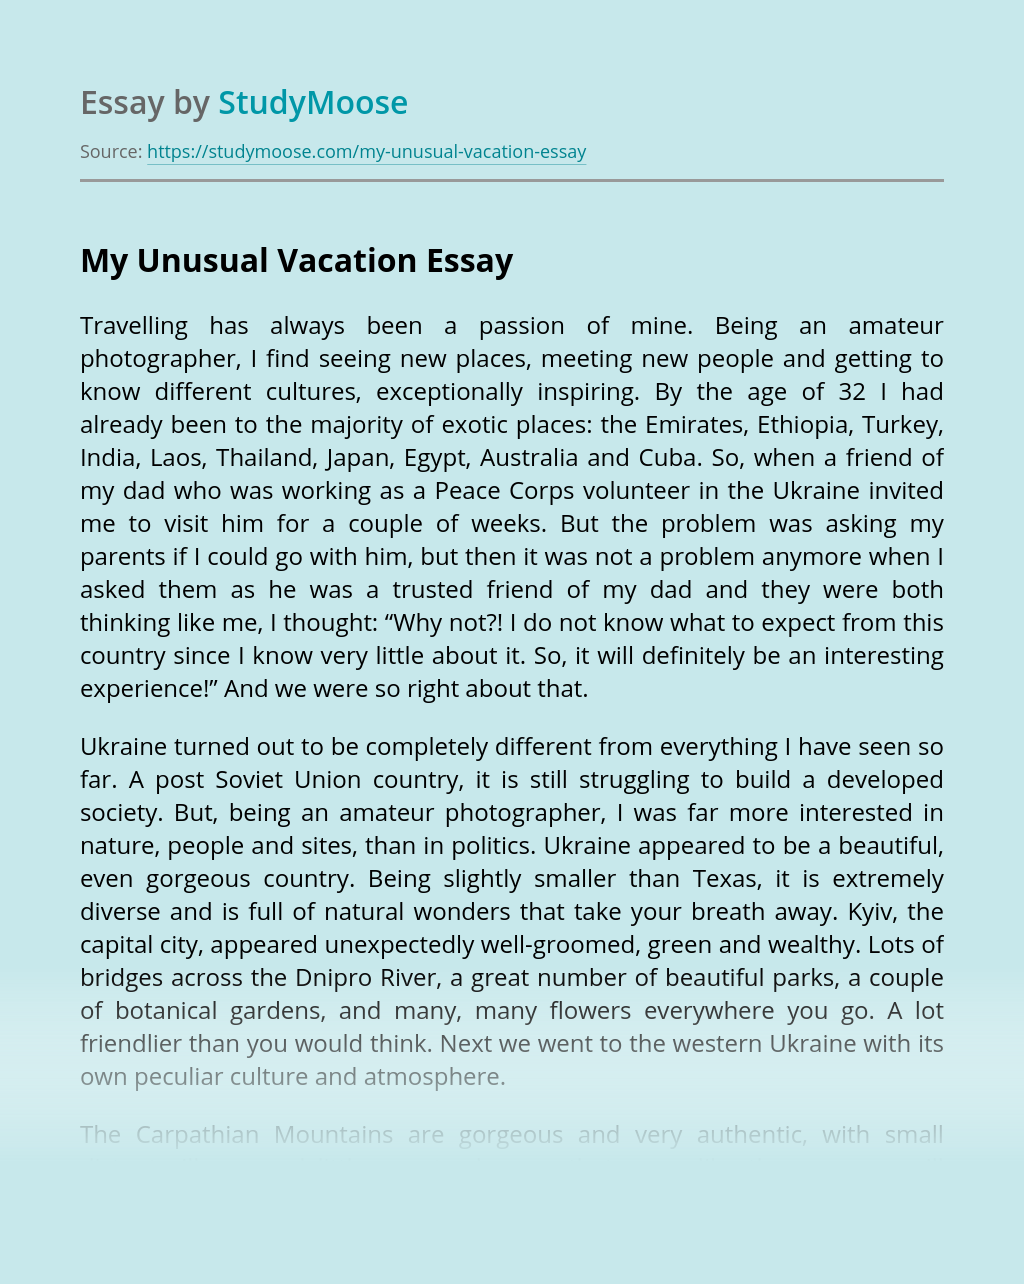 My Unusual Vacation